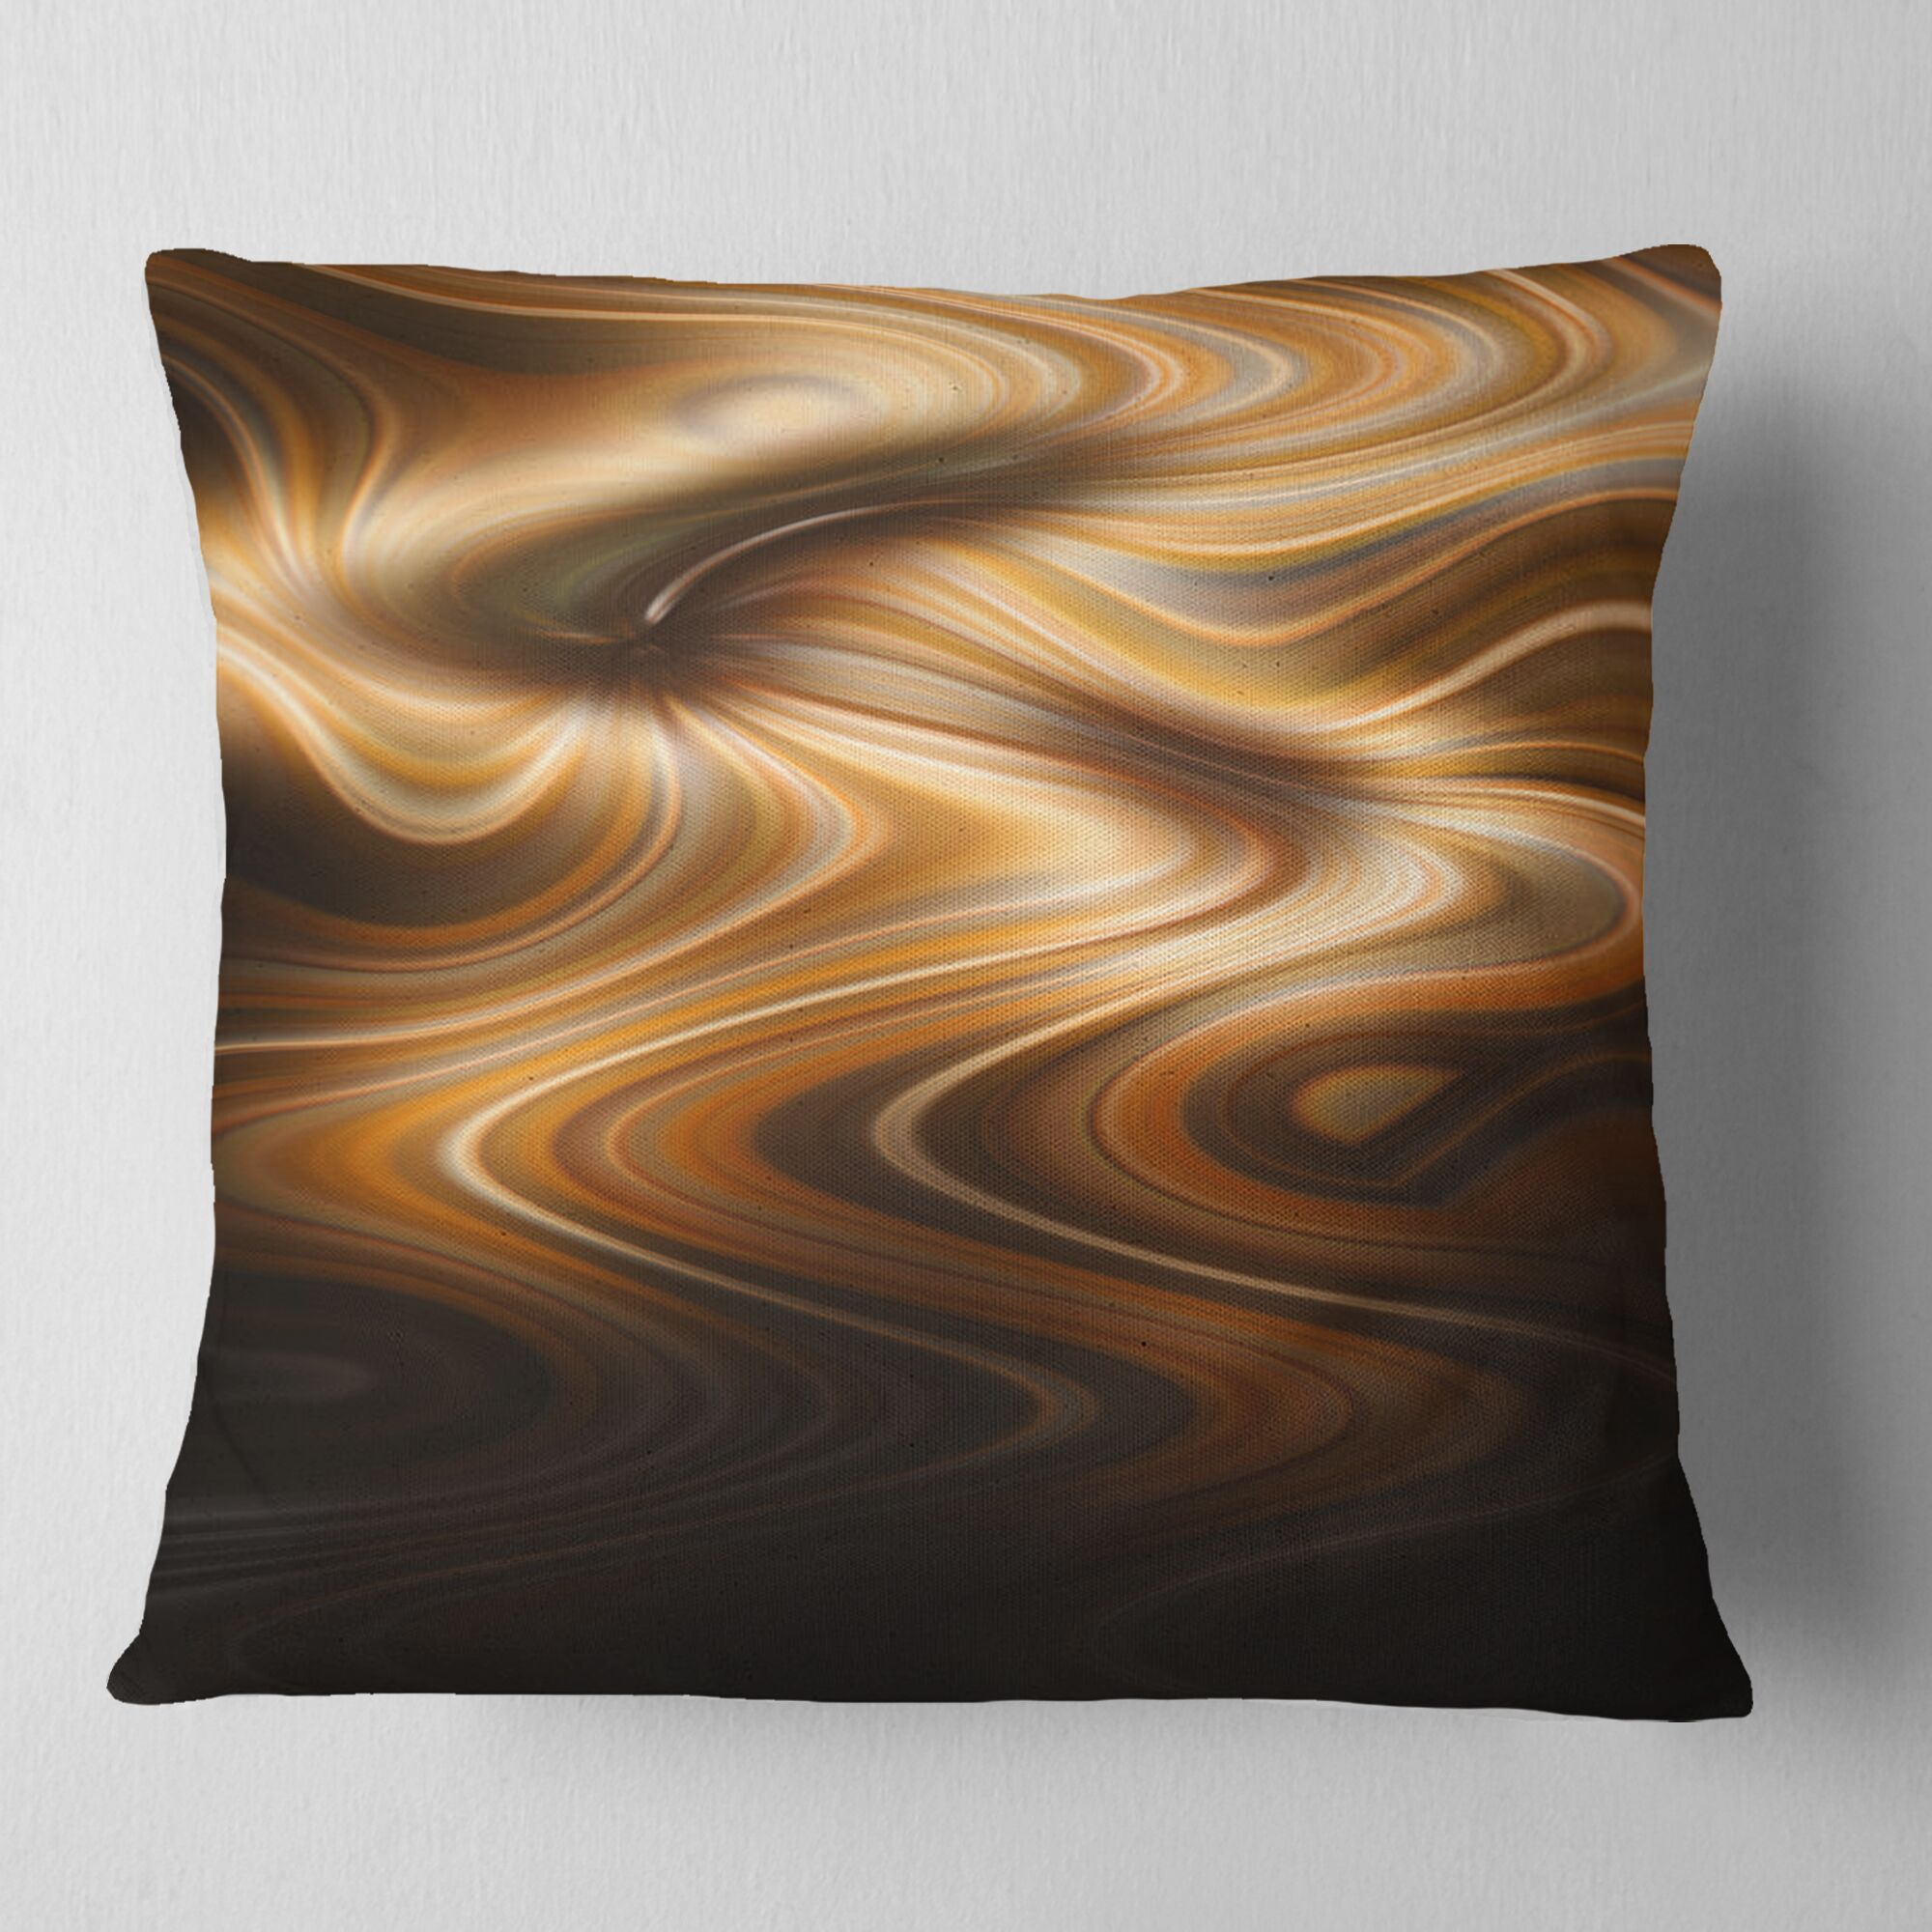 Abstract Curved Waves Texture Pillow Size: 16